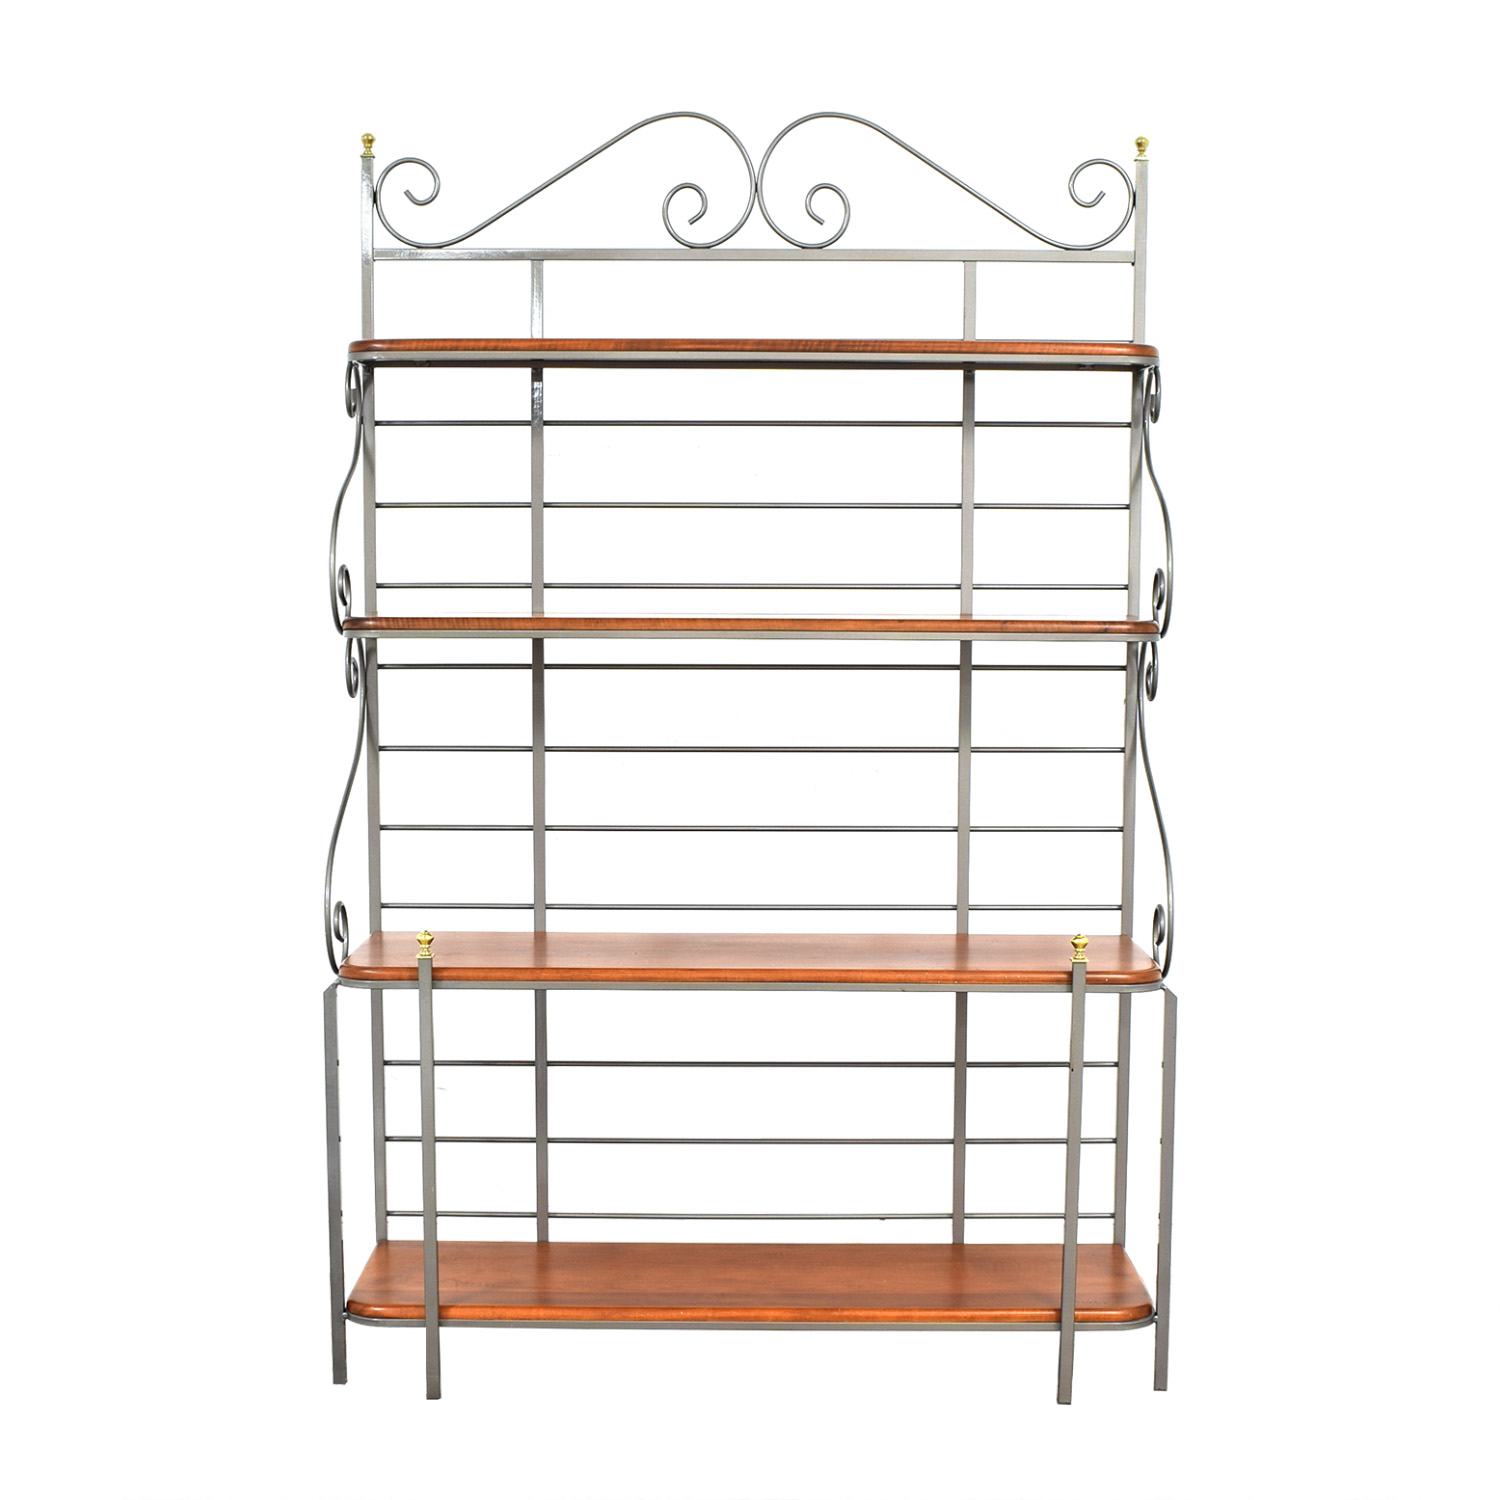 Charleston Forge Charleston Forge Bakers Rack dimensions